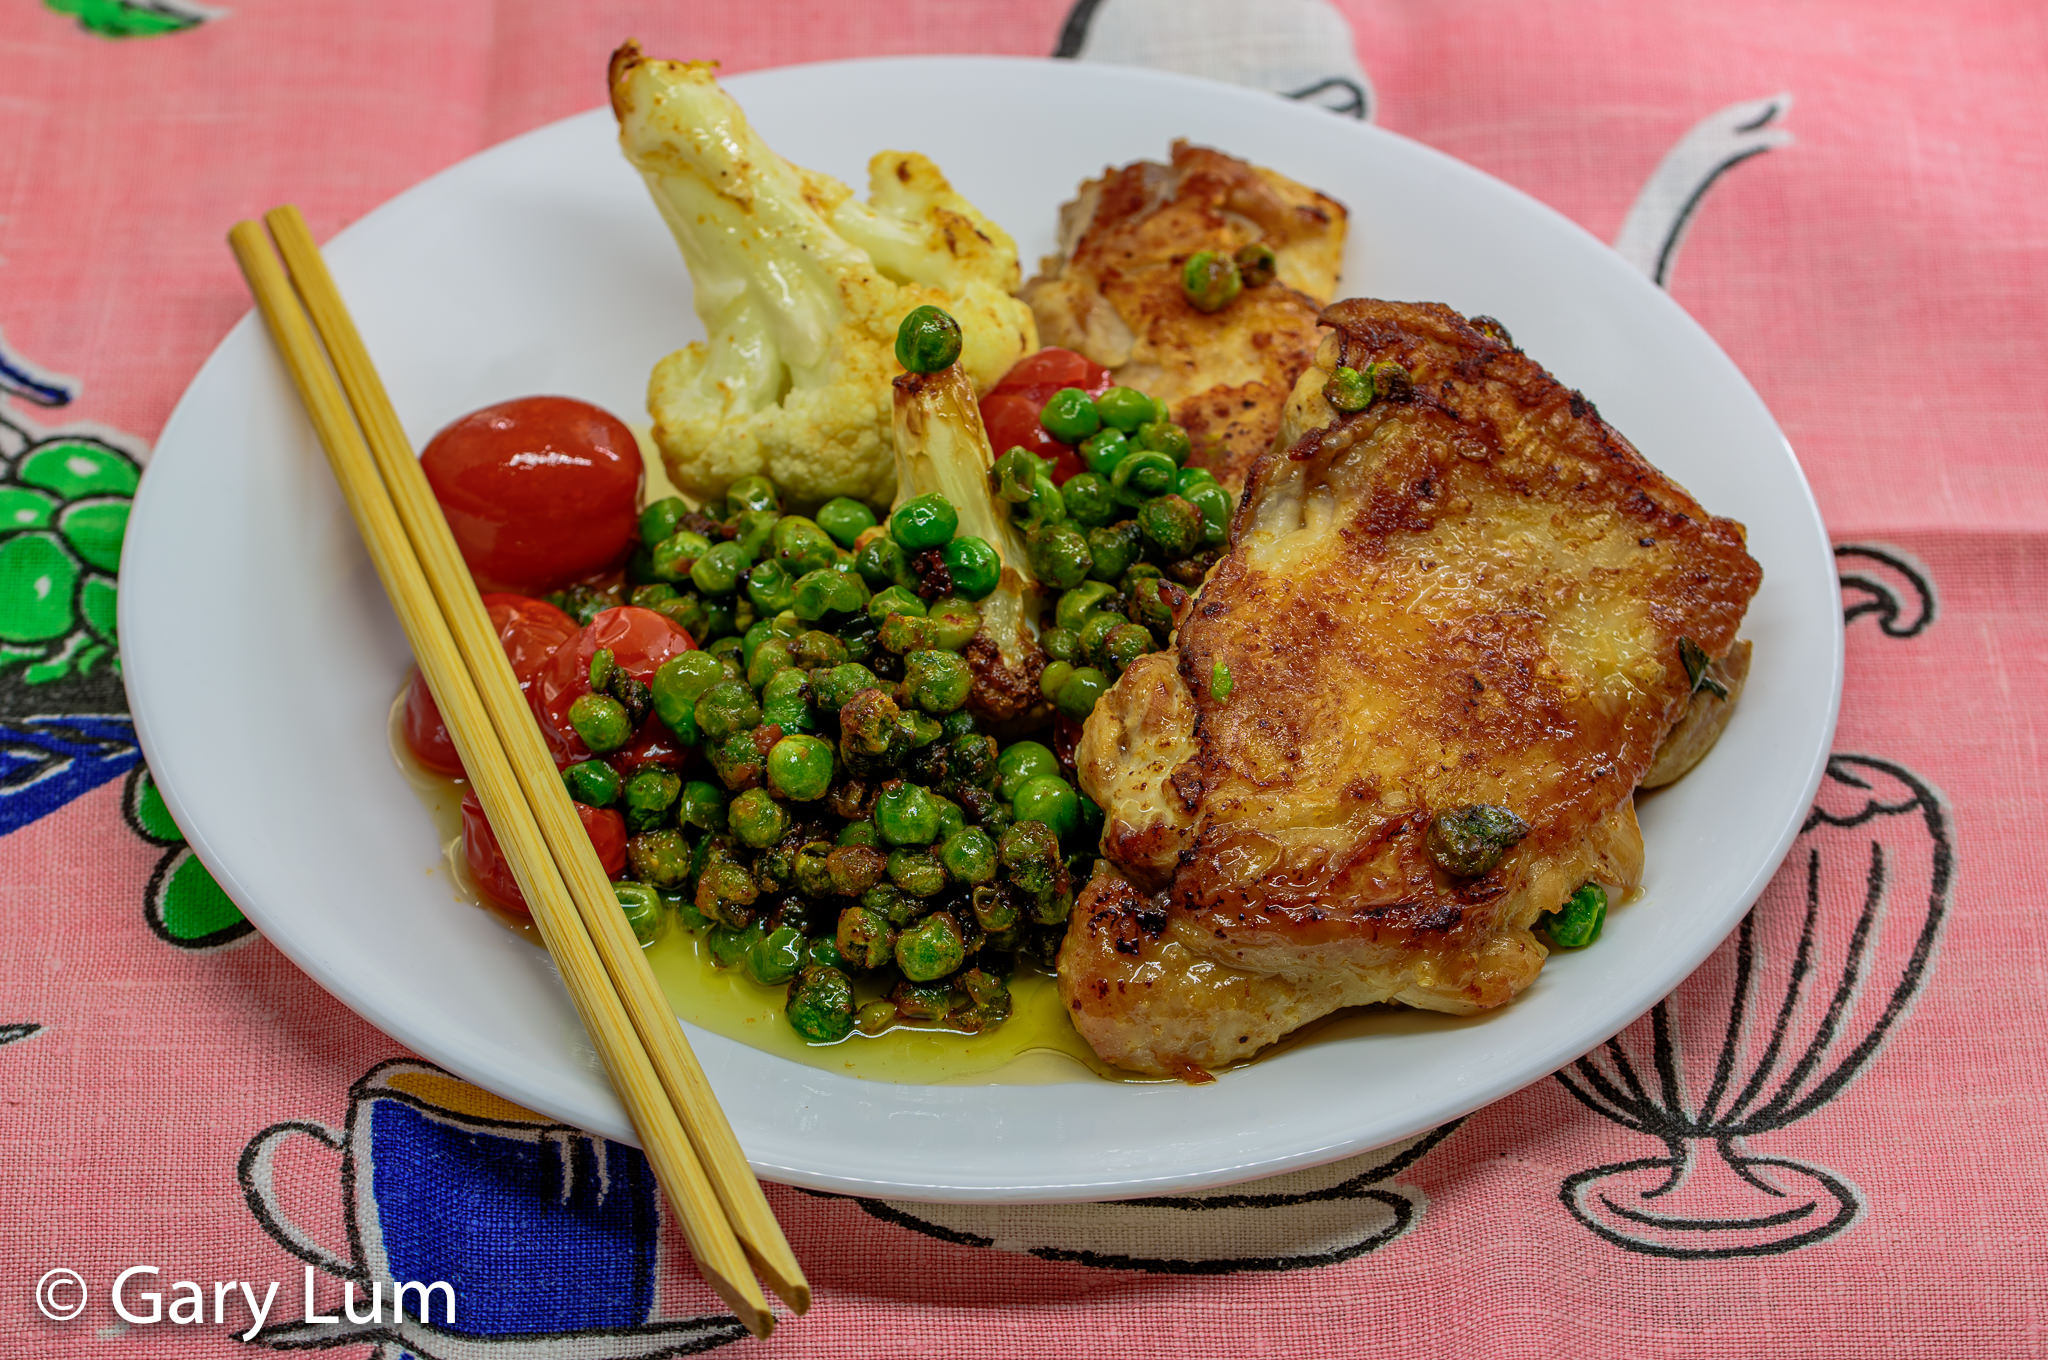 Pan-fried boneless chicken and vegetables. Gary Lum.